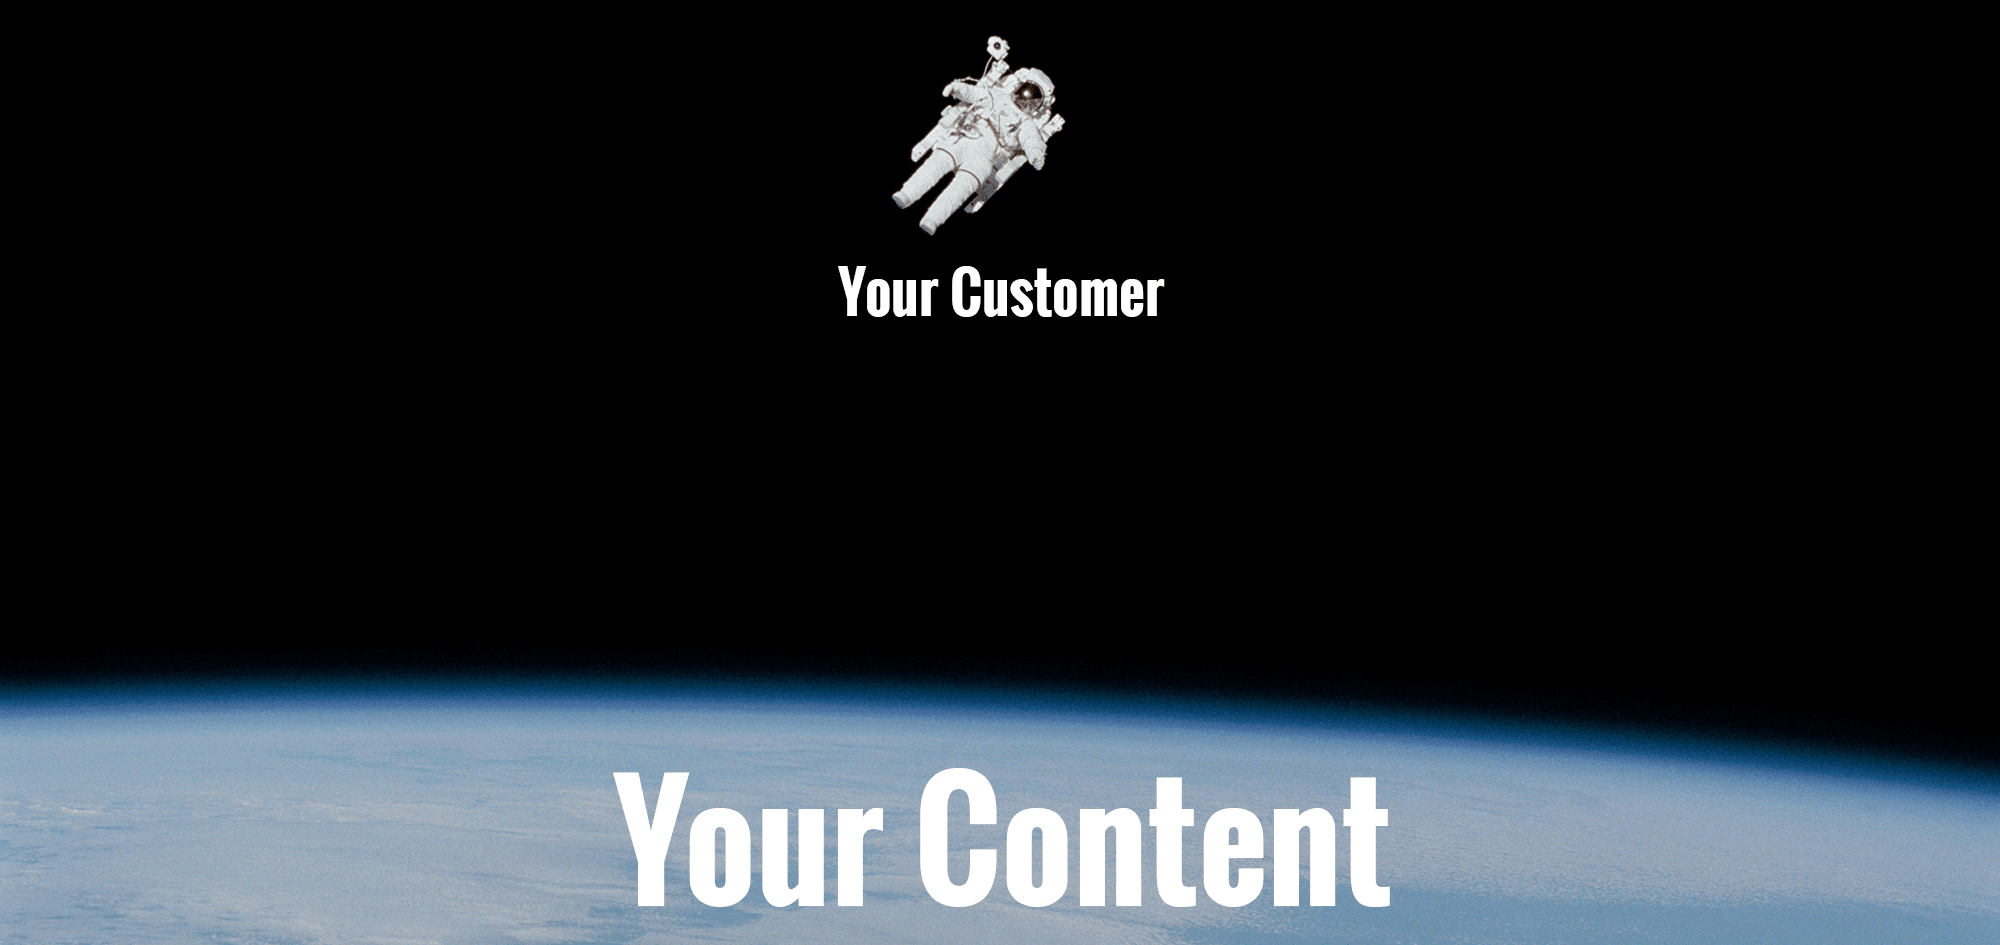 Your Customer Your Content - Absolute Technology Solutions